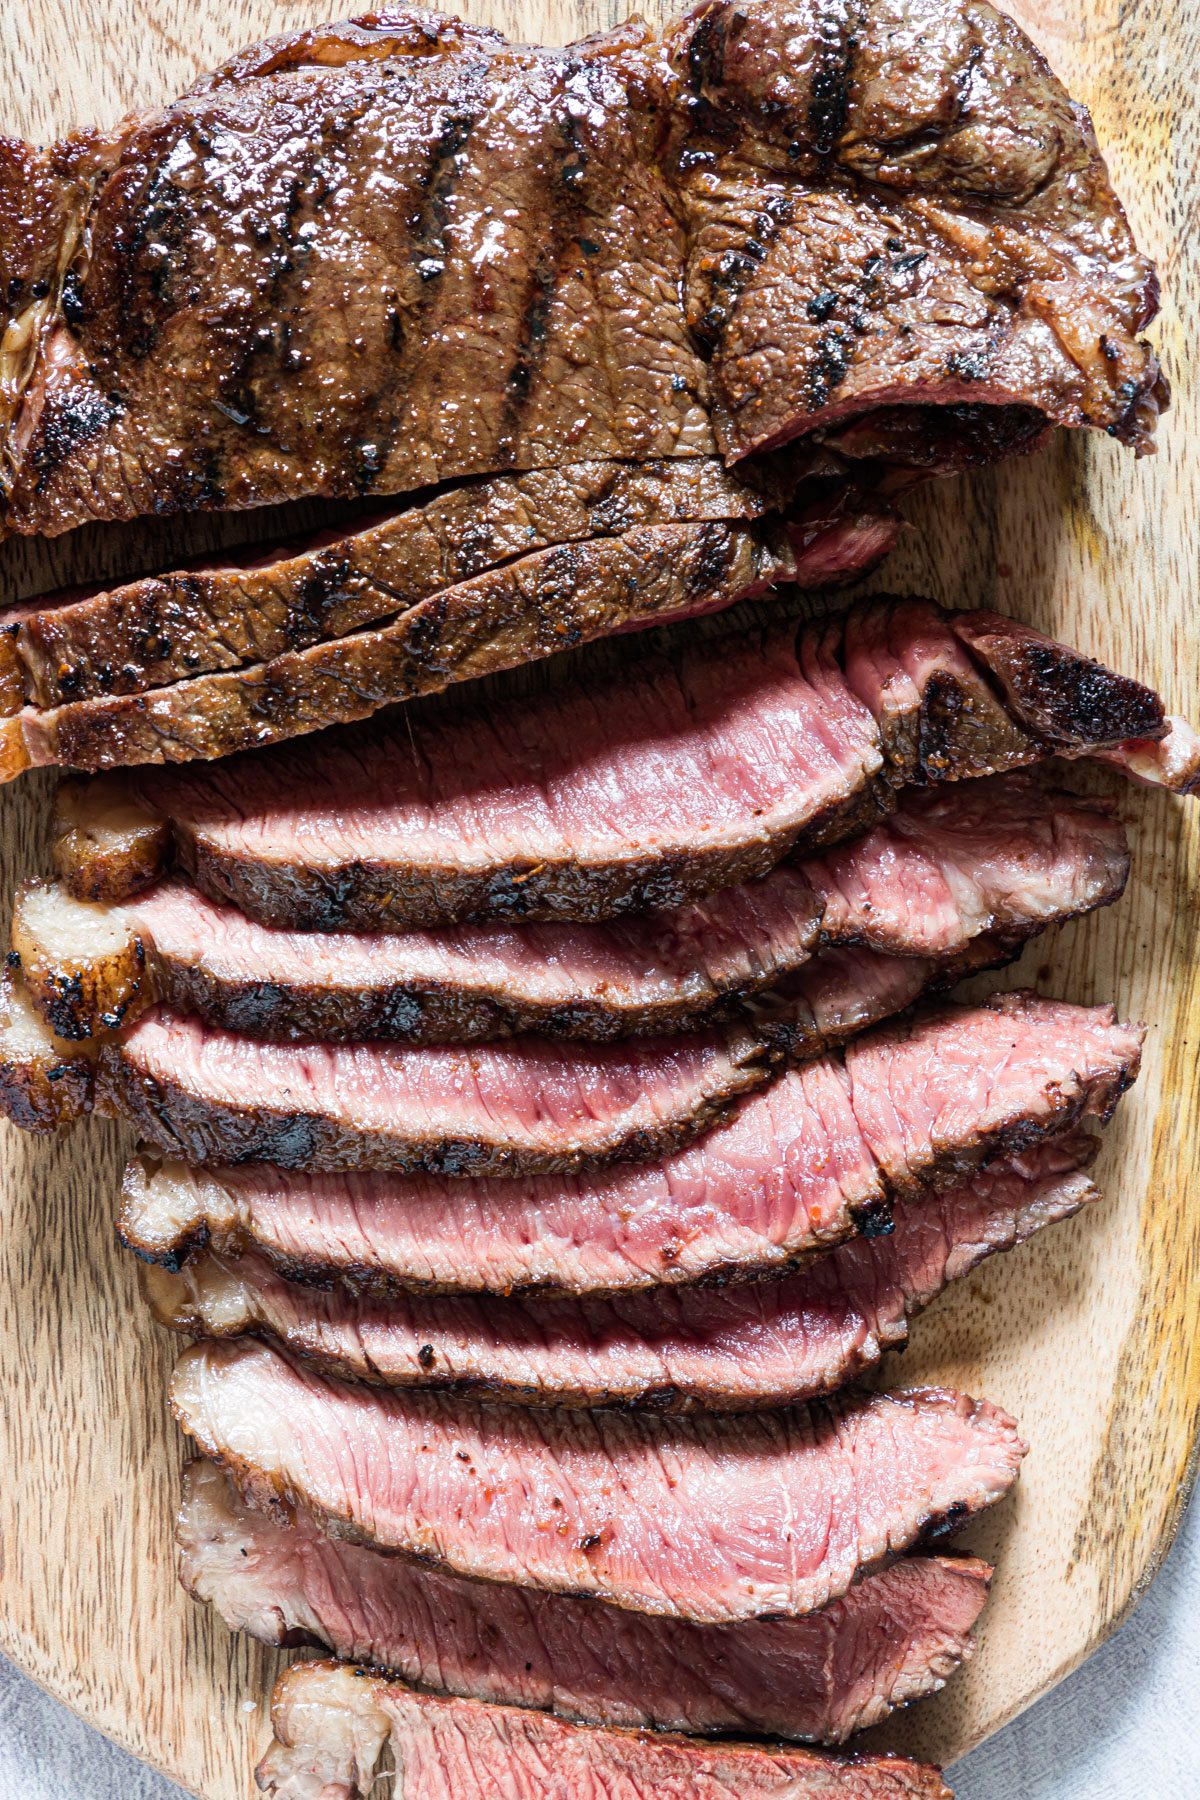 Close up of grilled steak with some slices